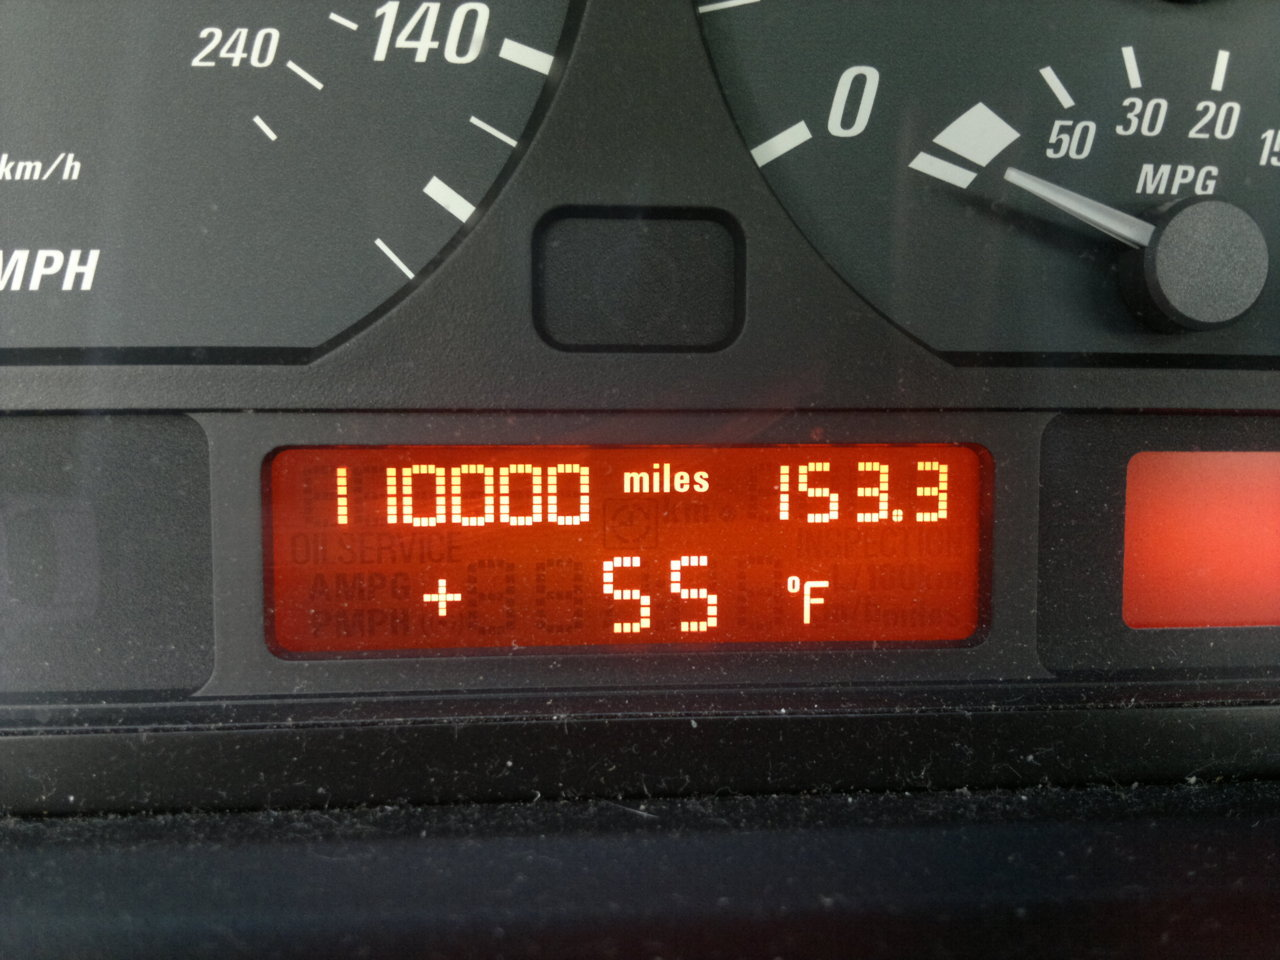 A few days ago my Ci finally hit 110,000 miles. It's been a while since I've had her now and she's getting old but I still haven't gotten tired of riding her ;DMyth: BMWs are costly to maintain.False. Just pay attention to the dash's icons, check the engine oil, transmission fluid, etc. regularly and you'll never have to pay those stereotypically high costs.To this day, the most I ever had to pay for maintenance/repairs done to the car was $350 (and it was for 4 jobs done as one). Take good care of your car and it'll take good care of you.